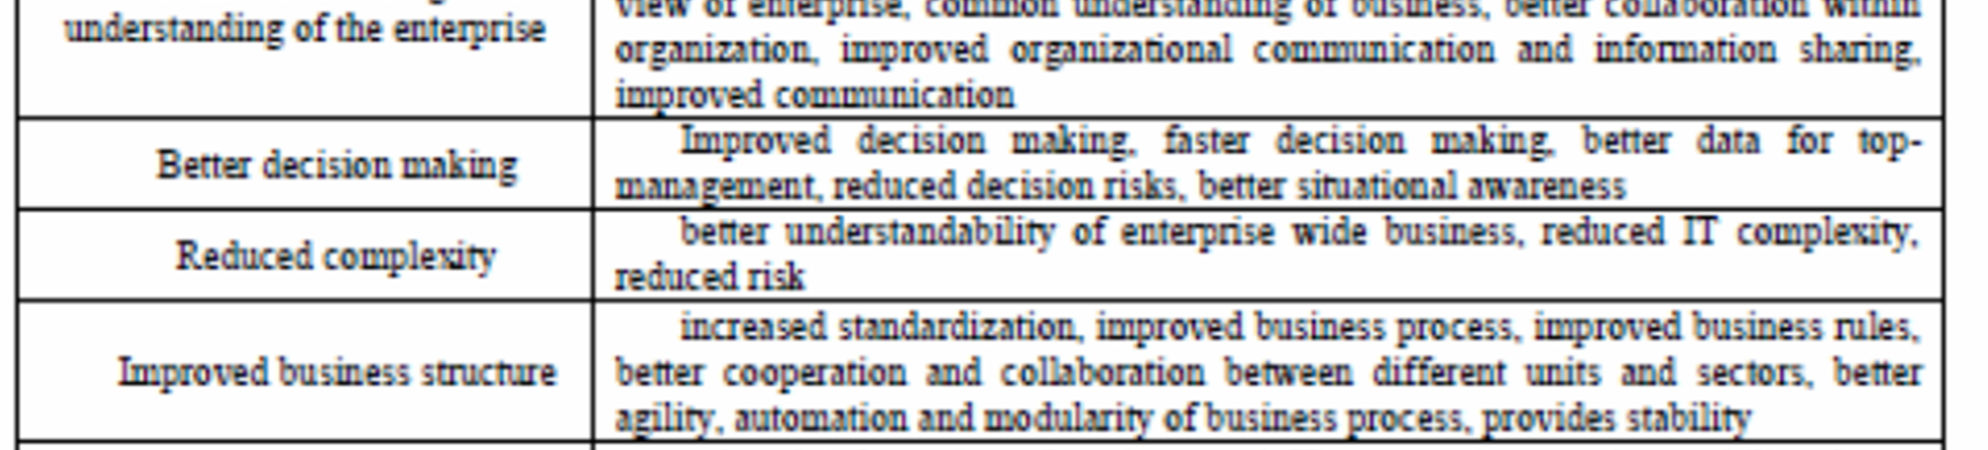 EA Benefits And Their Categorization By Wan Et Al. (2013) 76